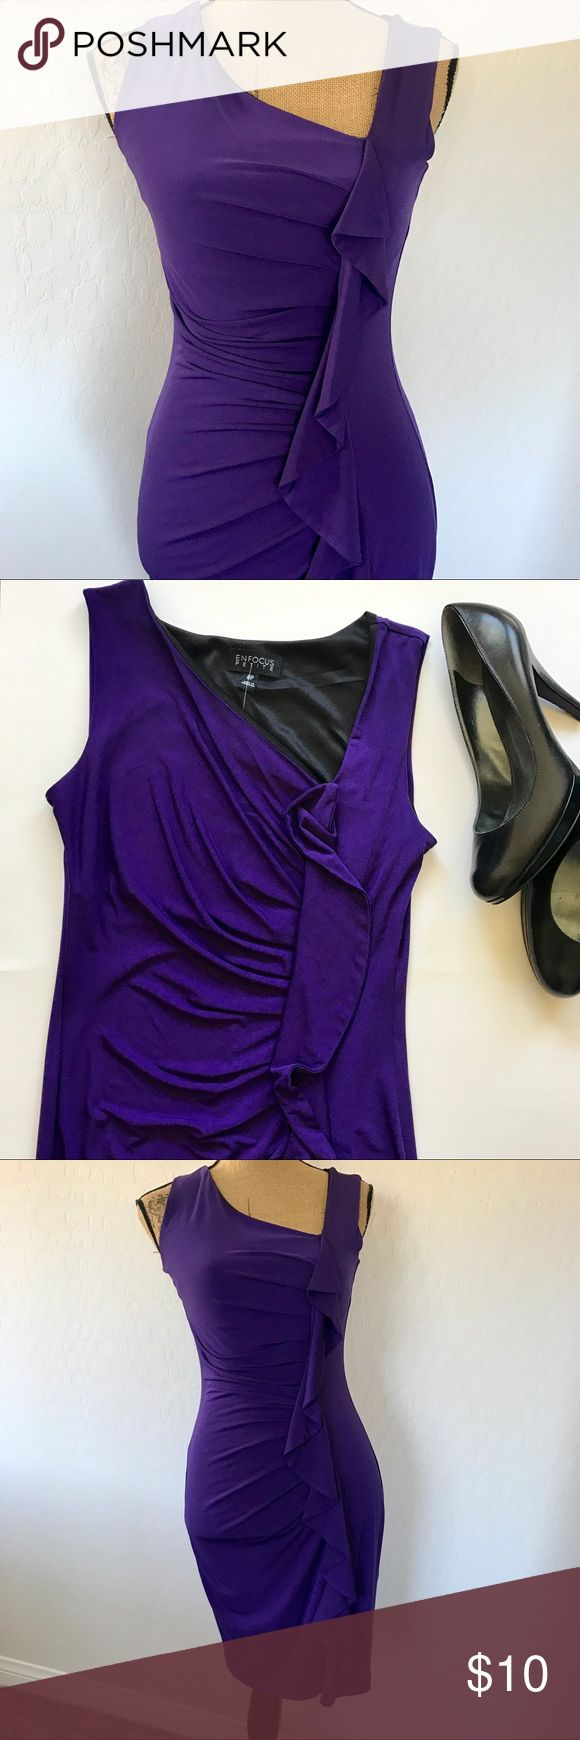 Enfocus Petites Purple Dress Gorgeous form fitting purple dress that hugs in all the right places! This dress is very flattering on! Excellent condition! Perfect for a night out! Enfocus Petite Dresses